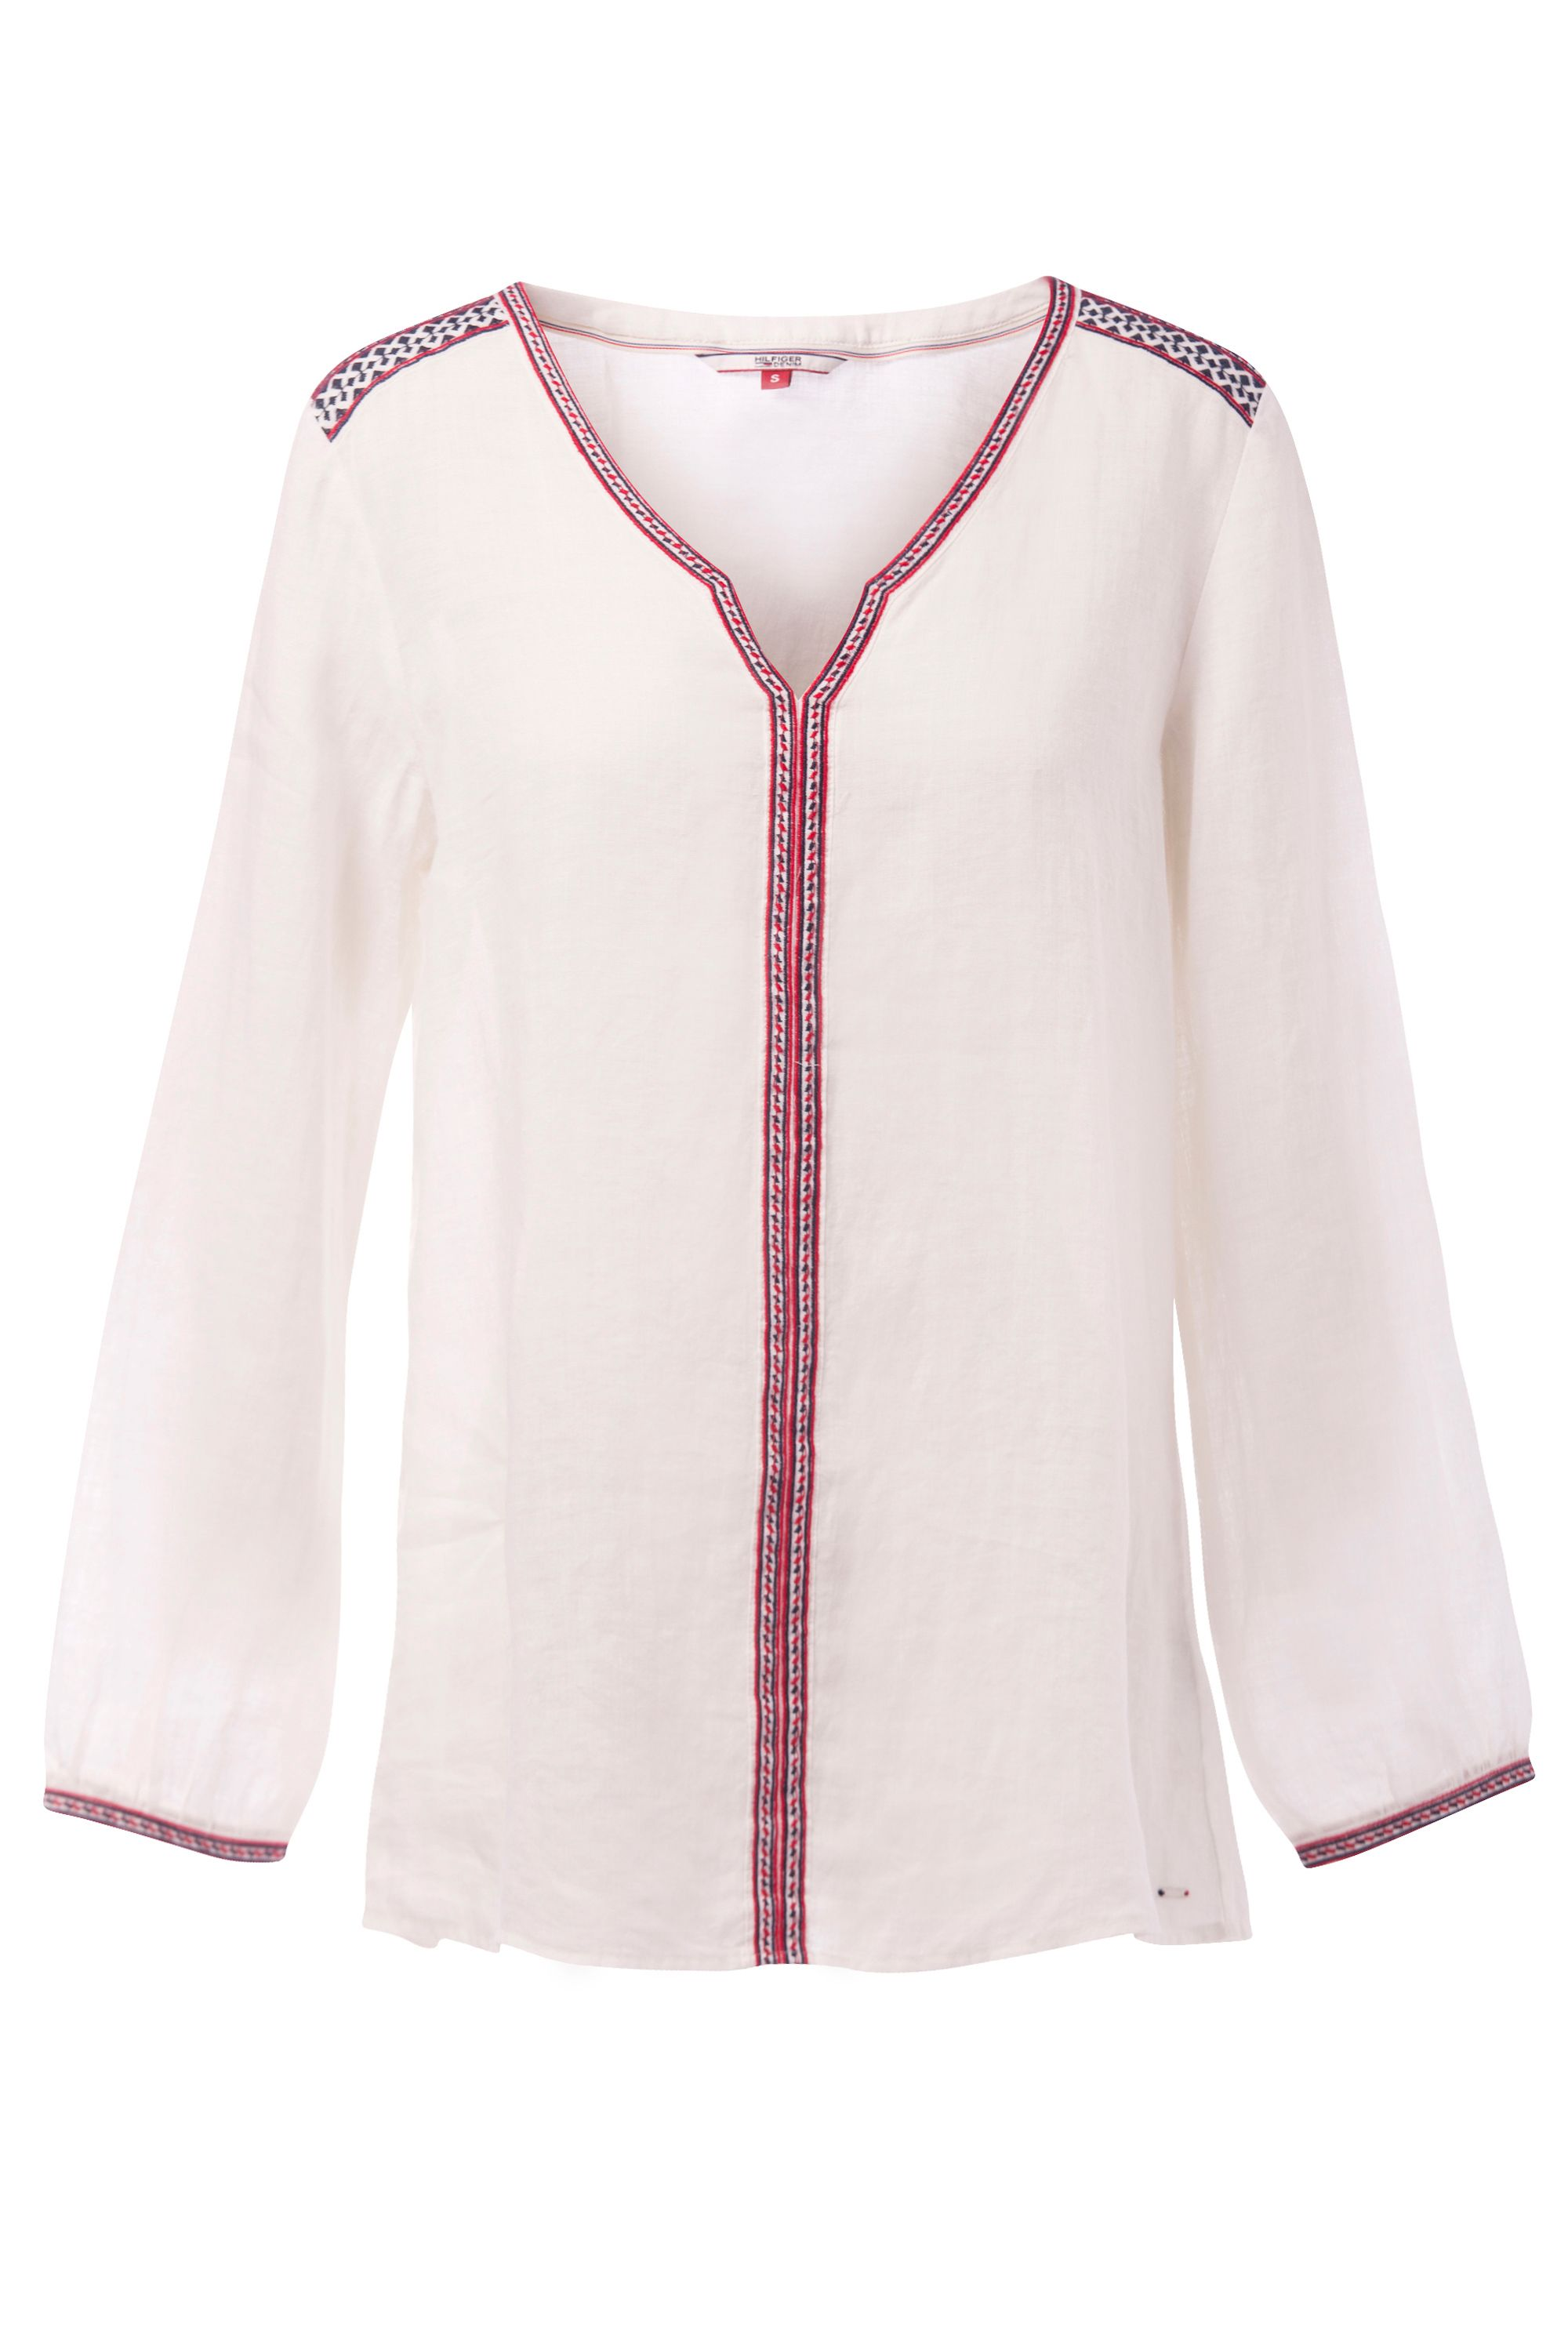 Tommy Hilfiger Embroidered Tunic, White